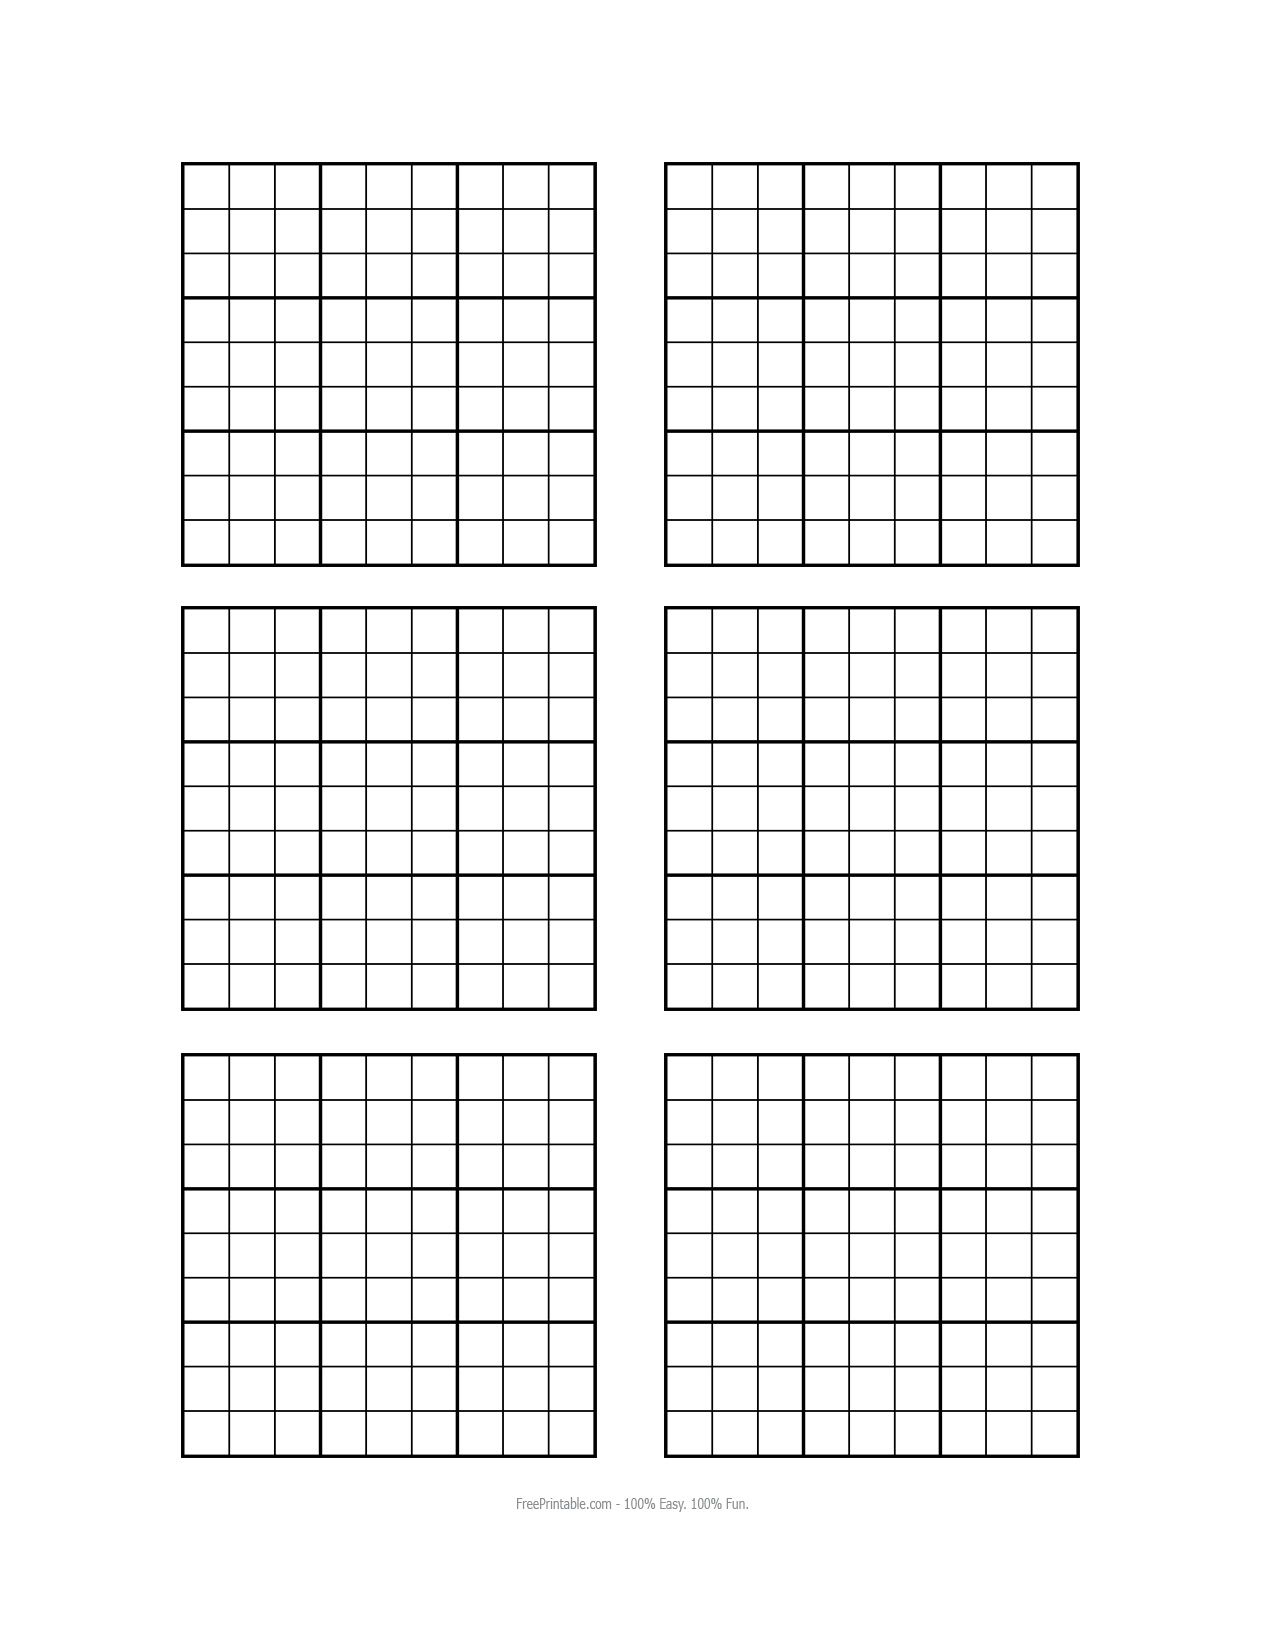 Printable Blank Sudoku Worksheets